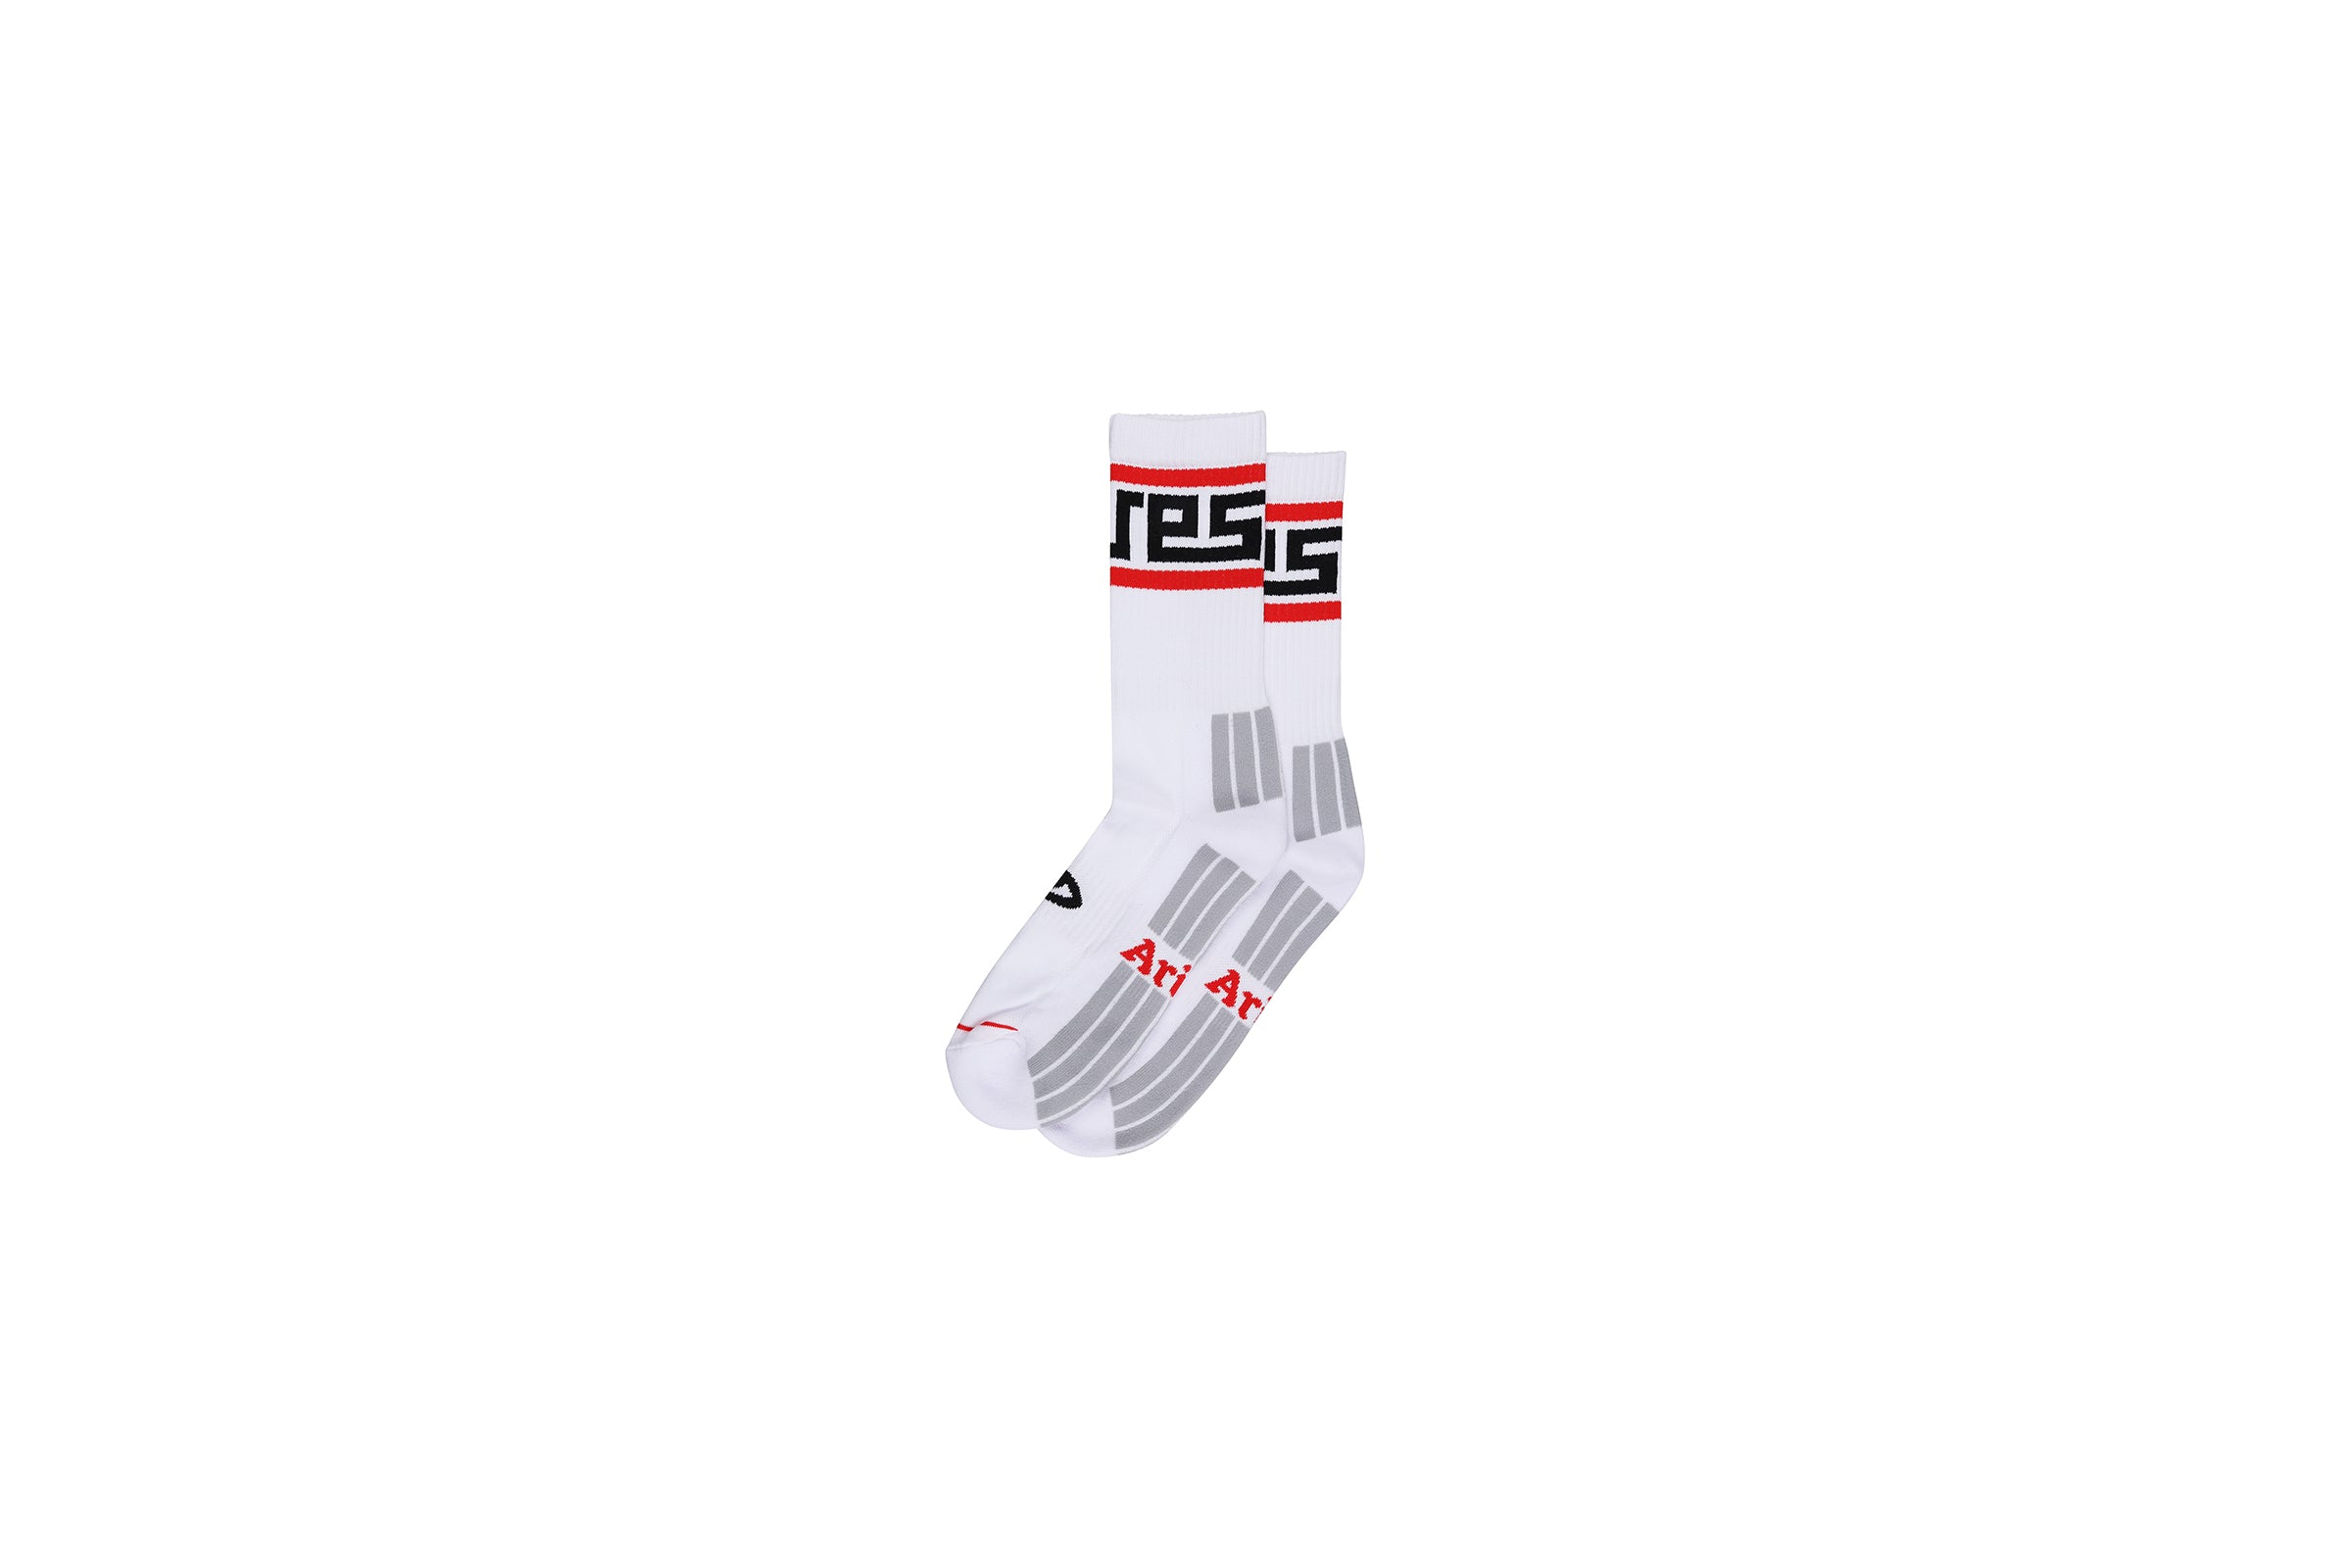 Aries Meandros Socks